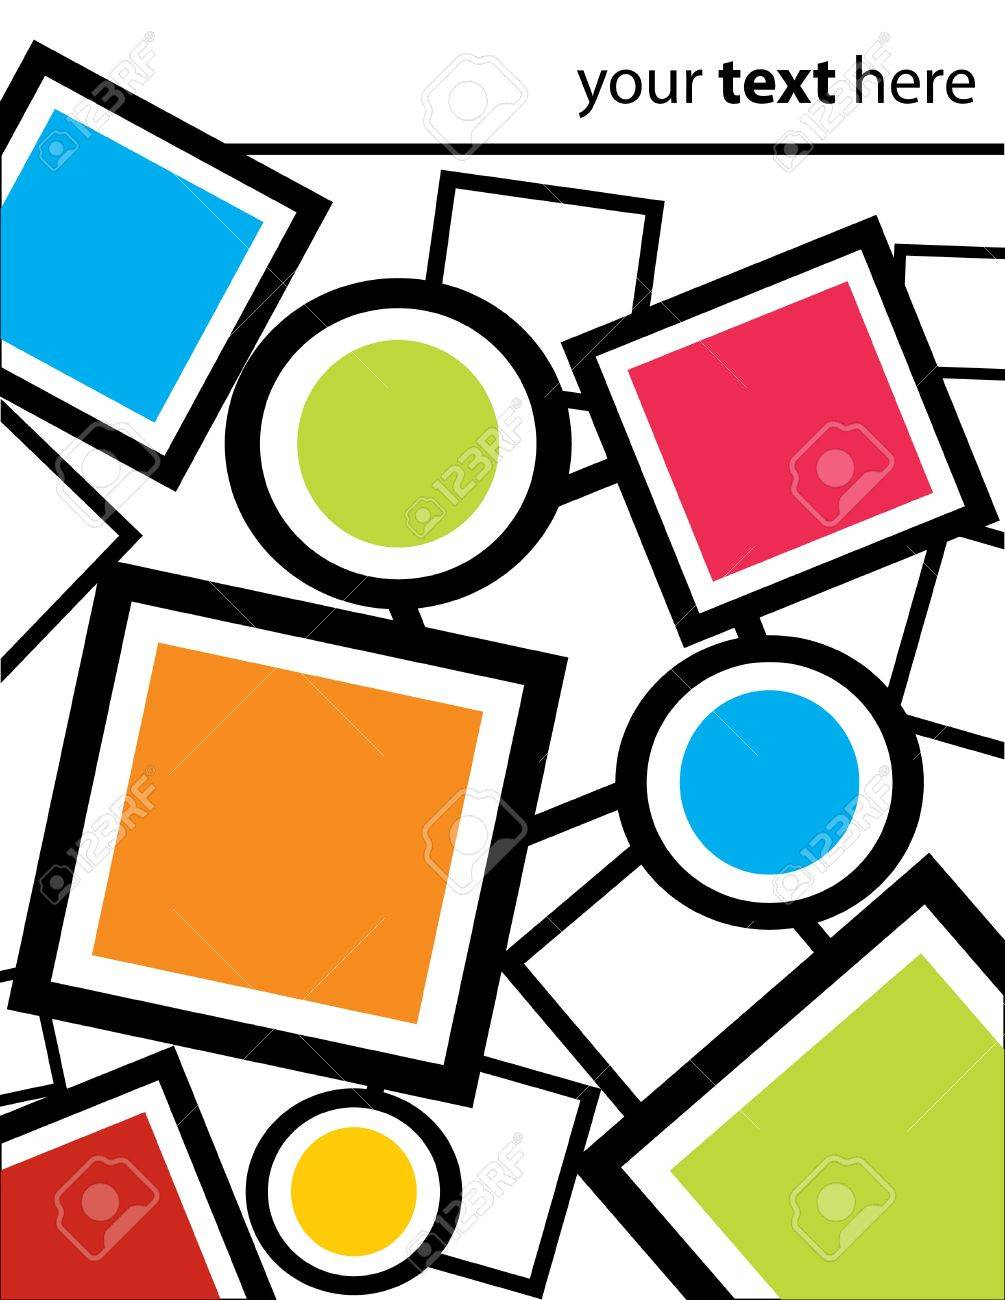 Squares, Circles, and Frames Background Stock Vector - 14555647